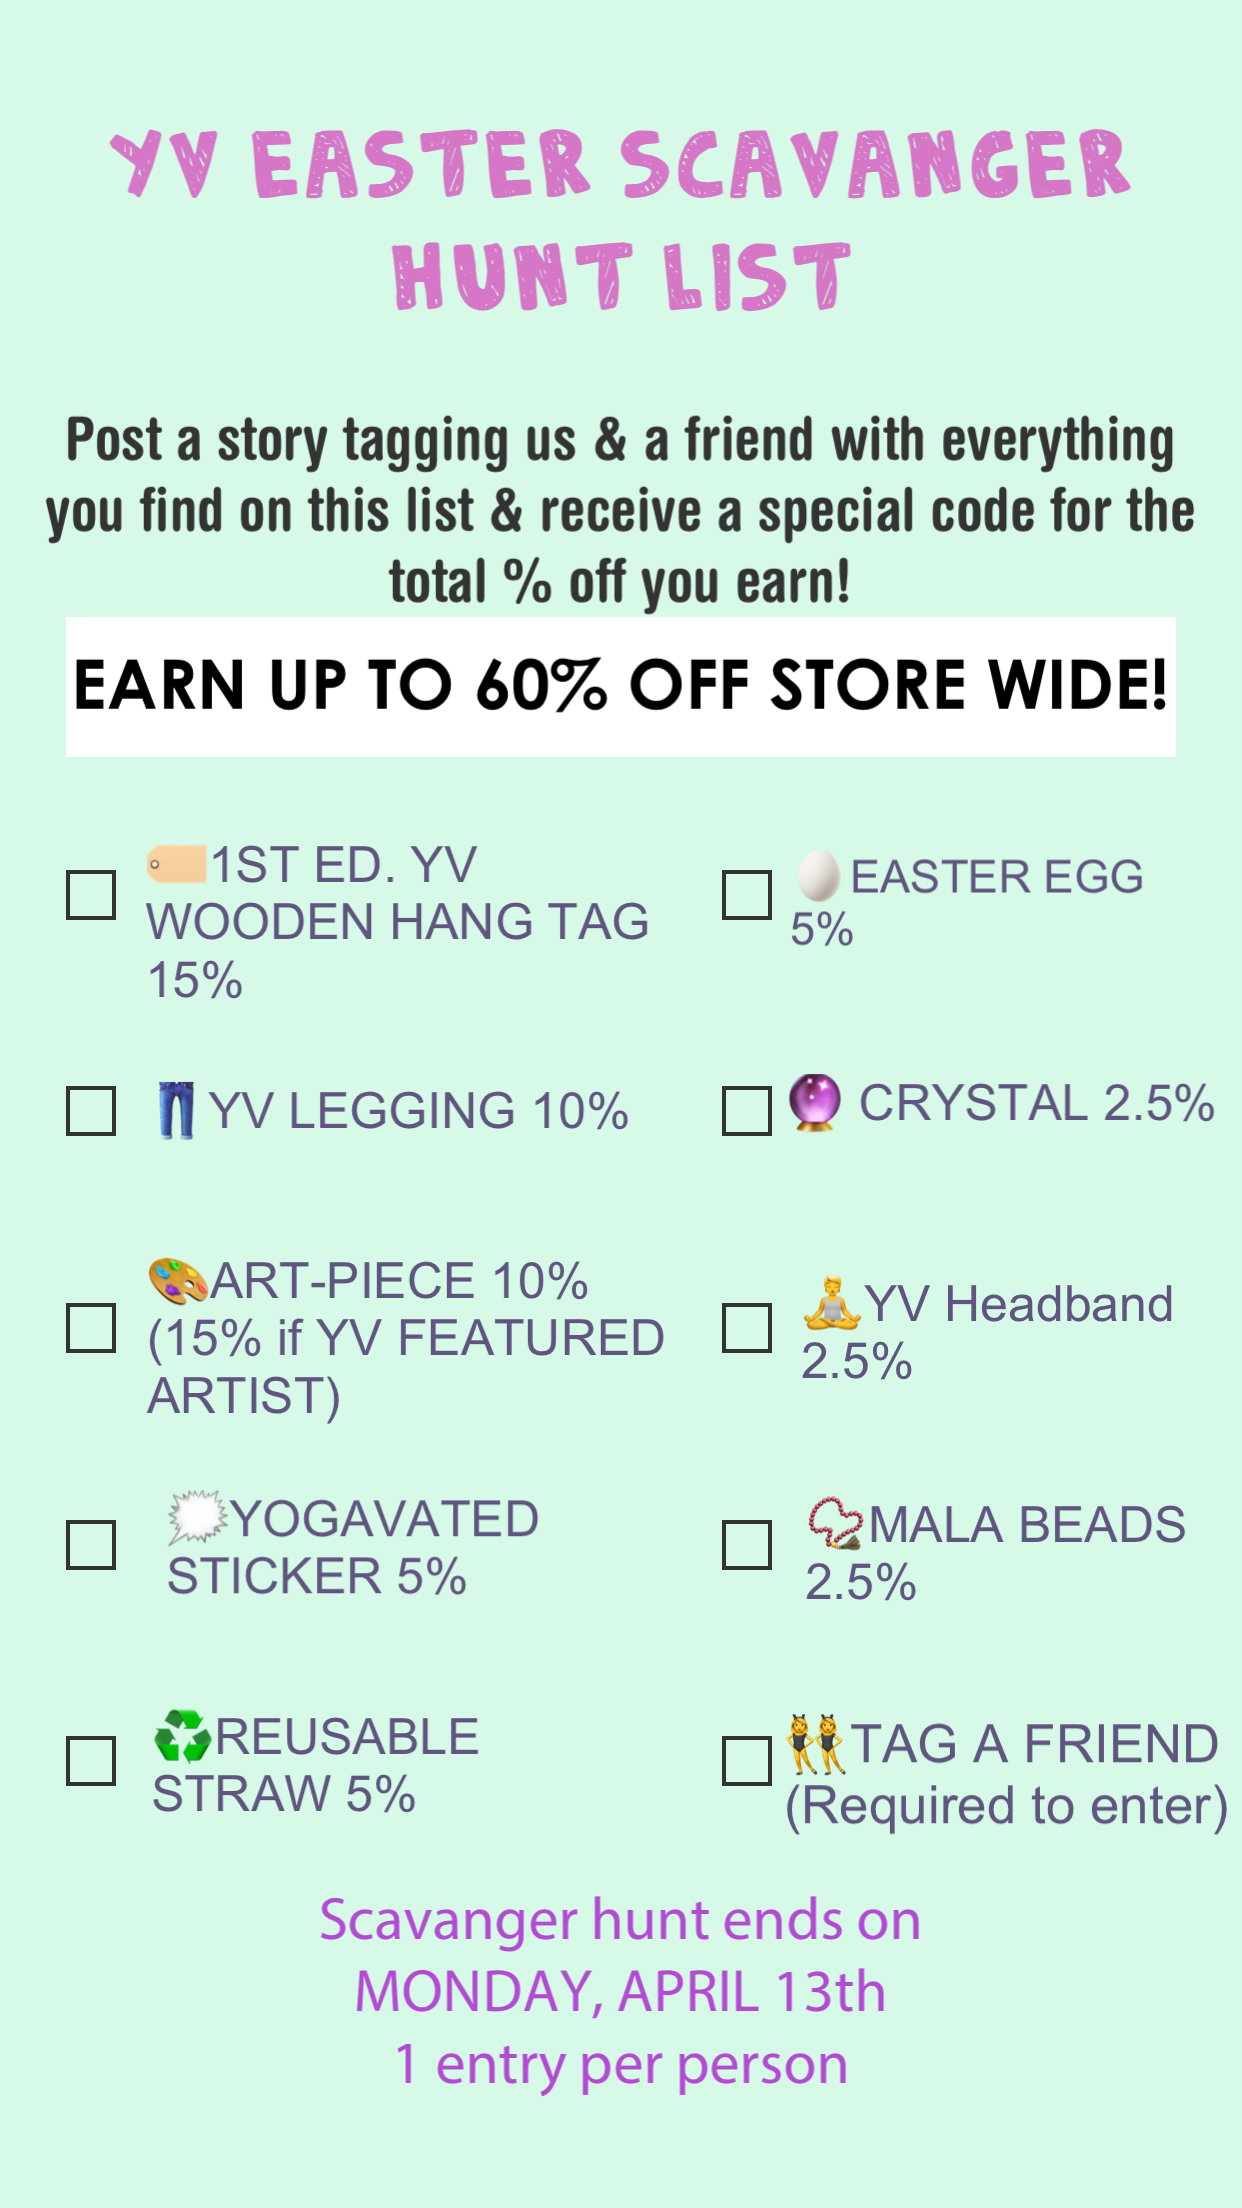 YV EASTER SCAVENGER HUNT | Earn up to 60% OFF